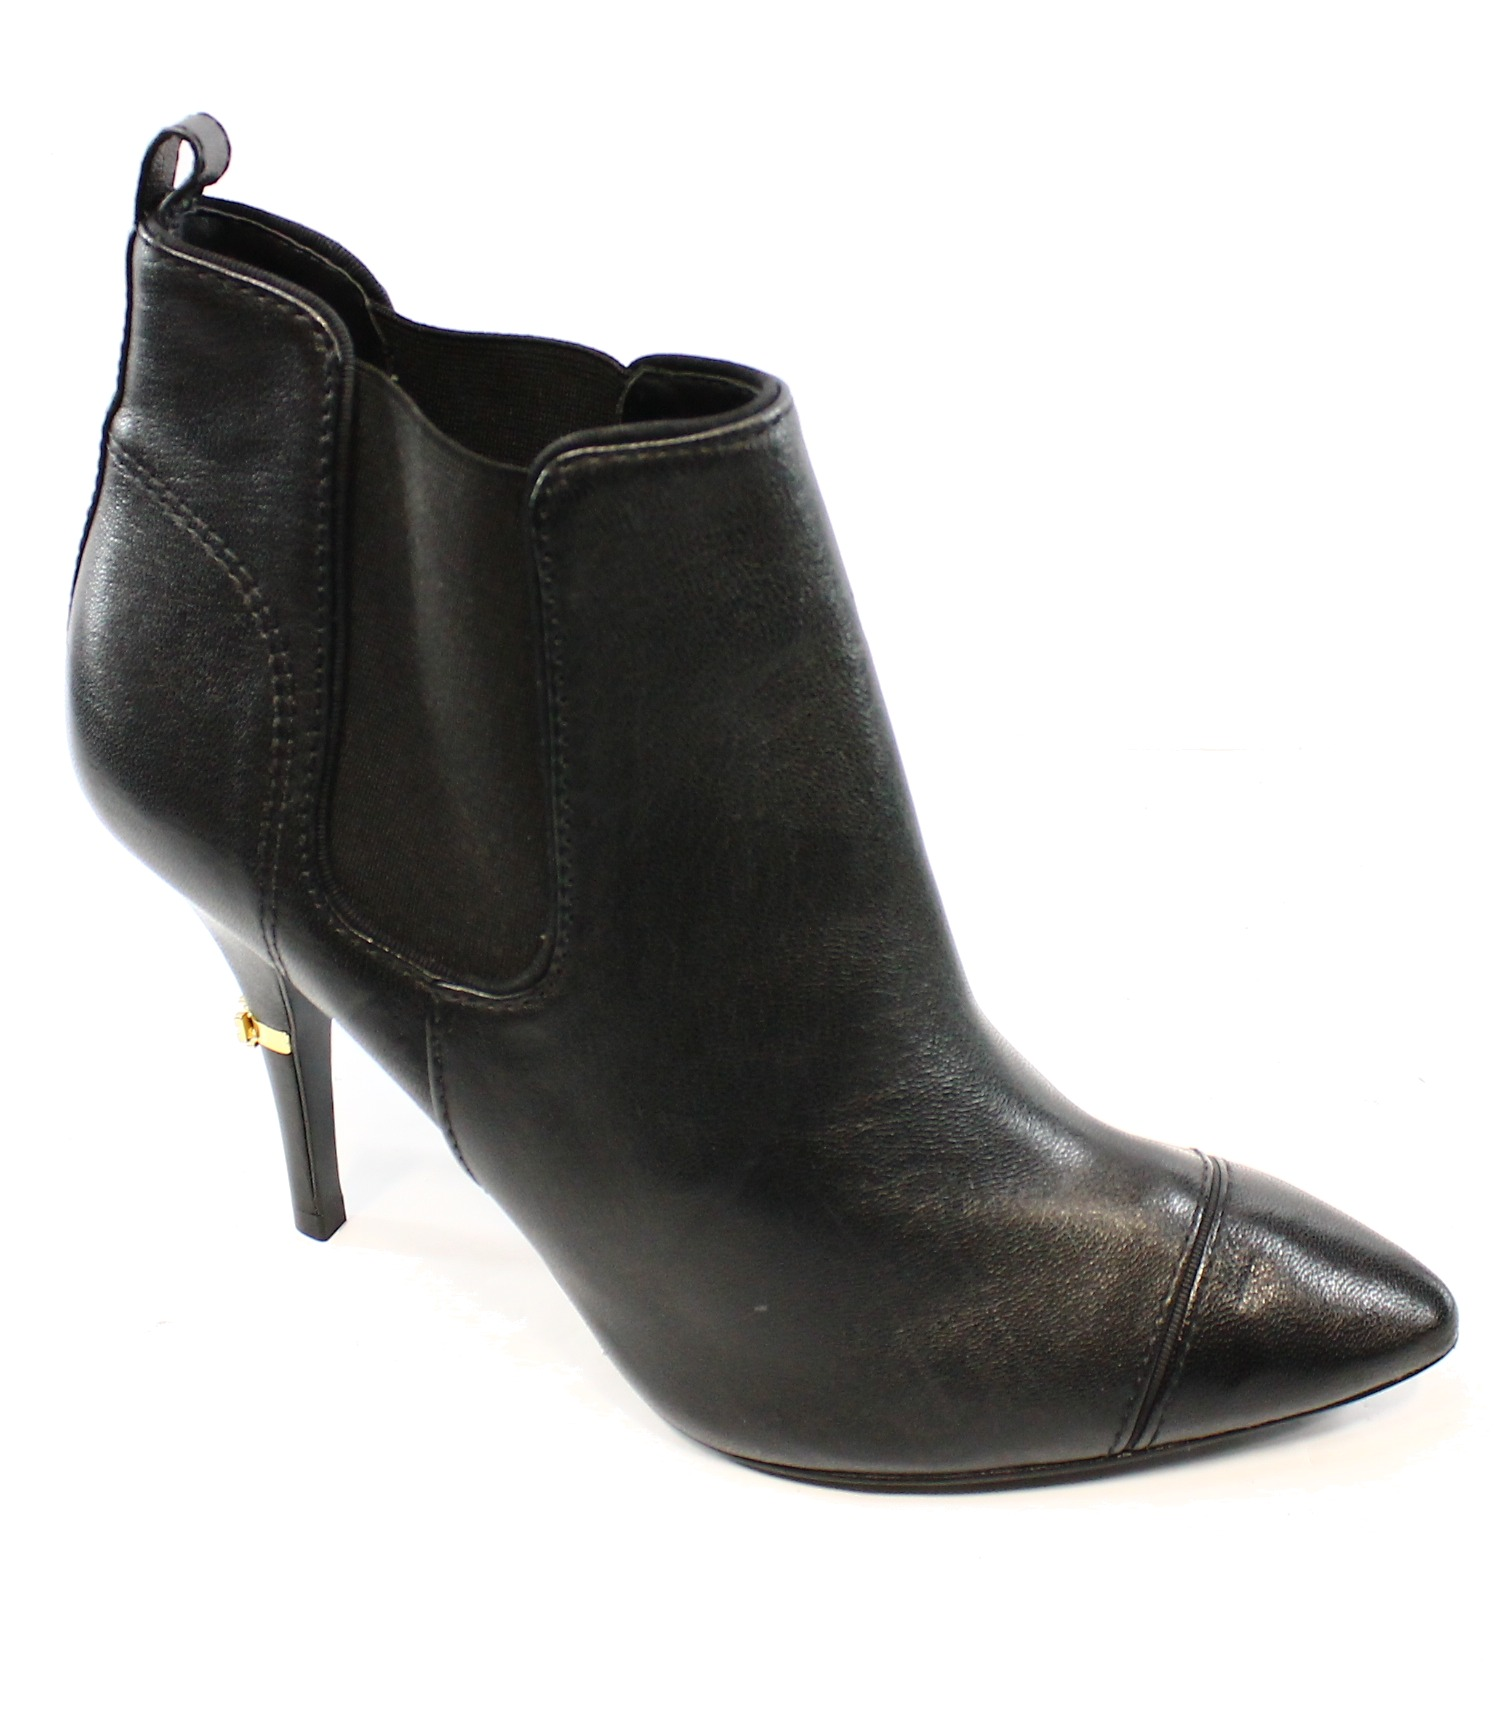 Alegria By PG Lite Size 11 US 42 EU Ankle Boots Caiti Black Beauty NEW CAT Brand New · Alegria · US $ or Best Offer +$ shipping. Sole Society Womens Size 11 Black Natasha ankle boot. Pre-Owned. $ Time left 1d 10h left. 1 bid +$ shipping. Clarks Bendables Womens Black Leather Ankle Boots Heels Shoes size 11 M.